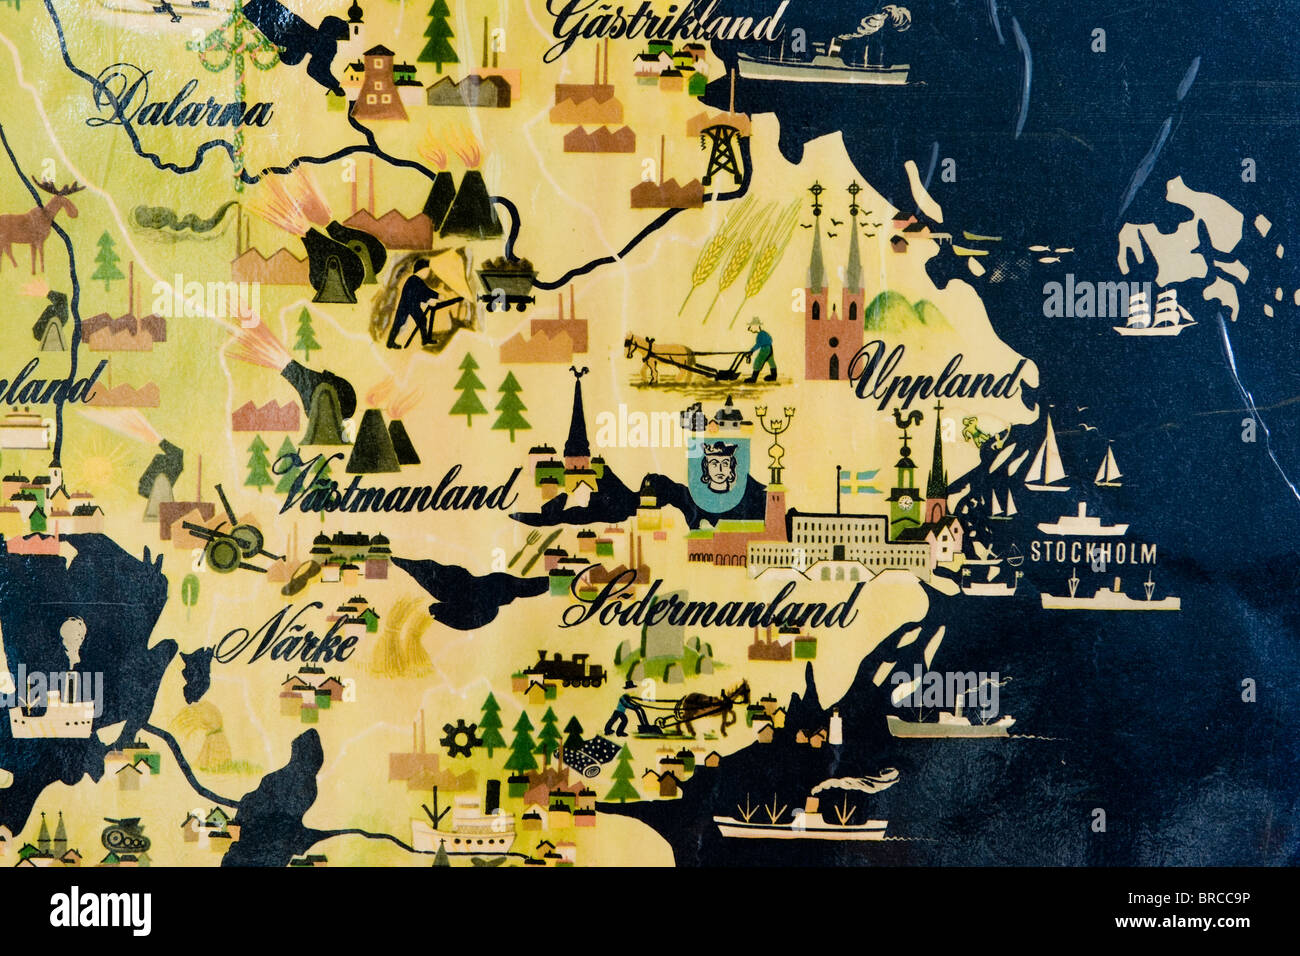 Old map of central Sweden - Stock Image